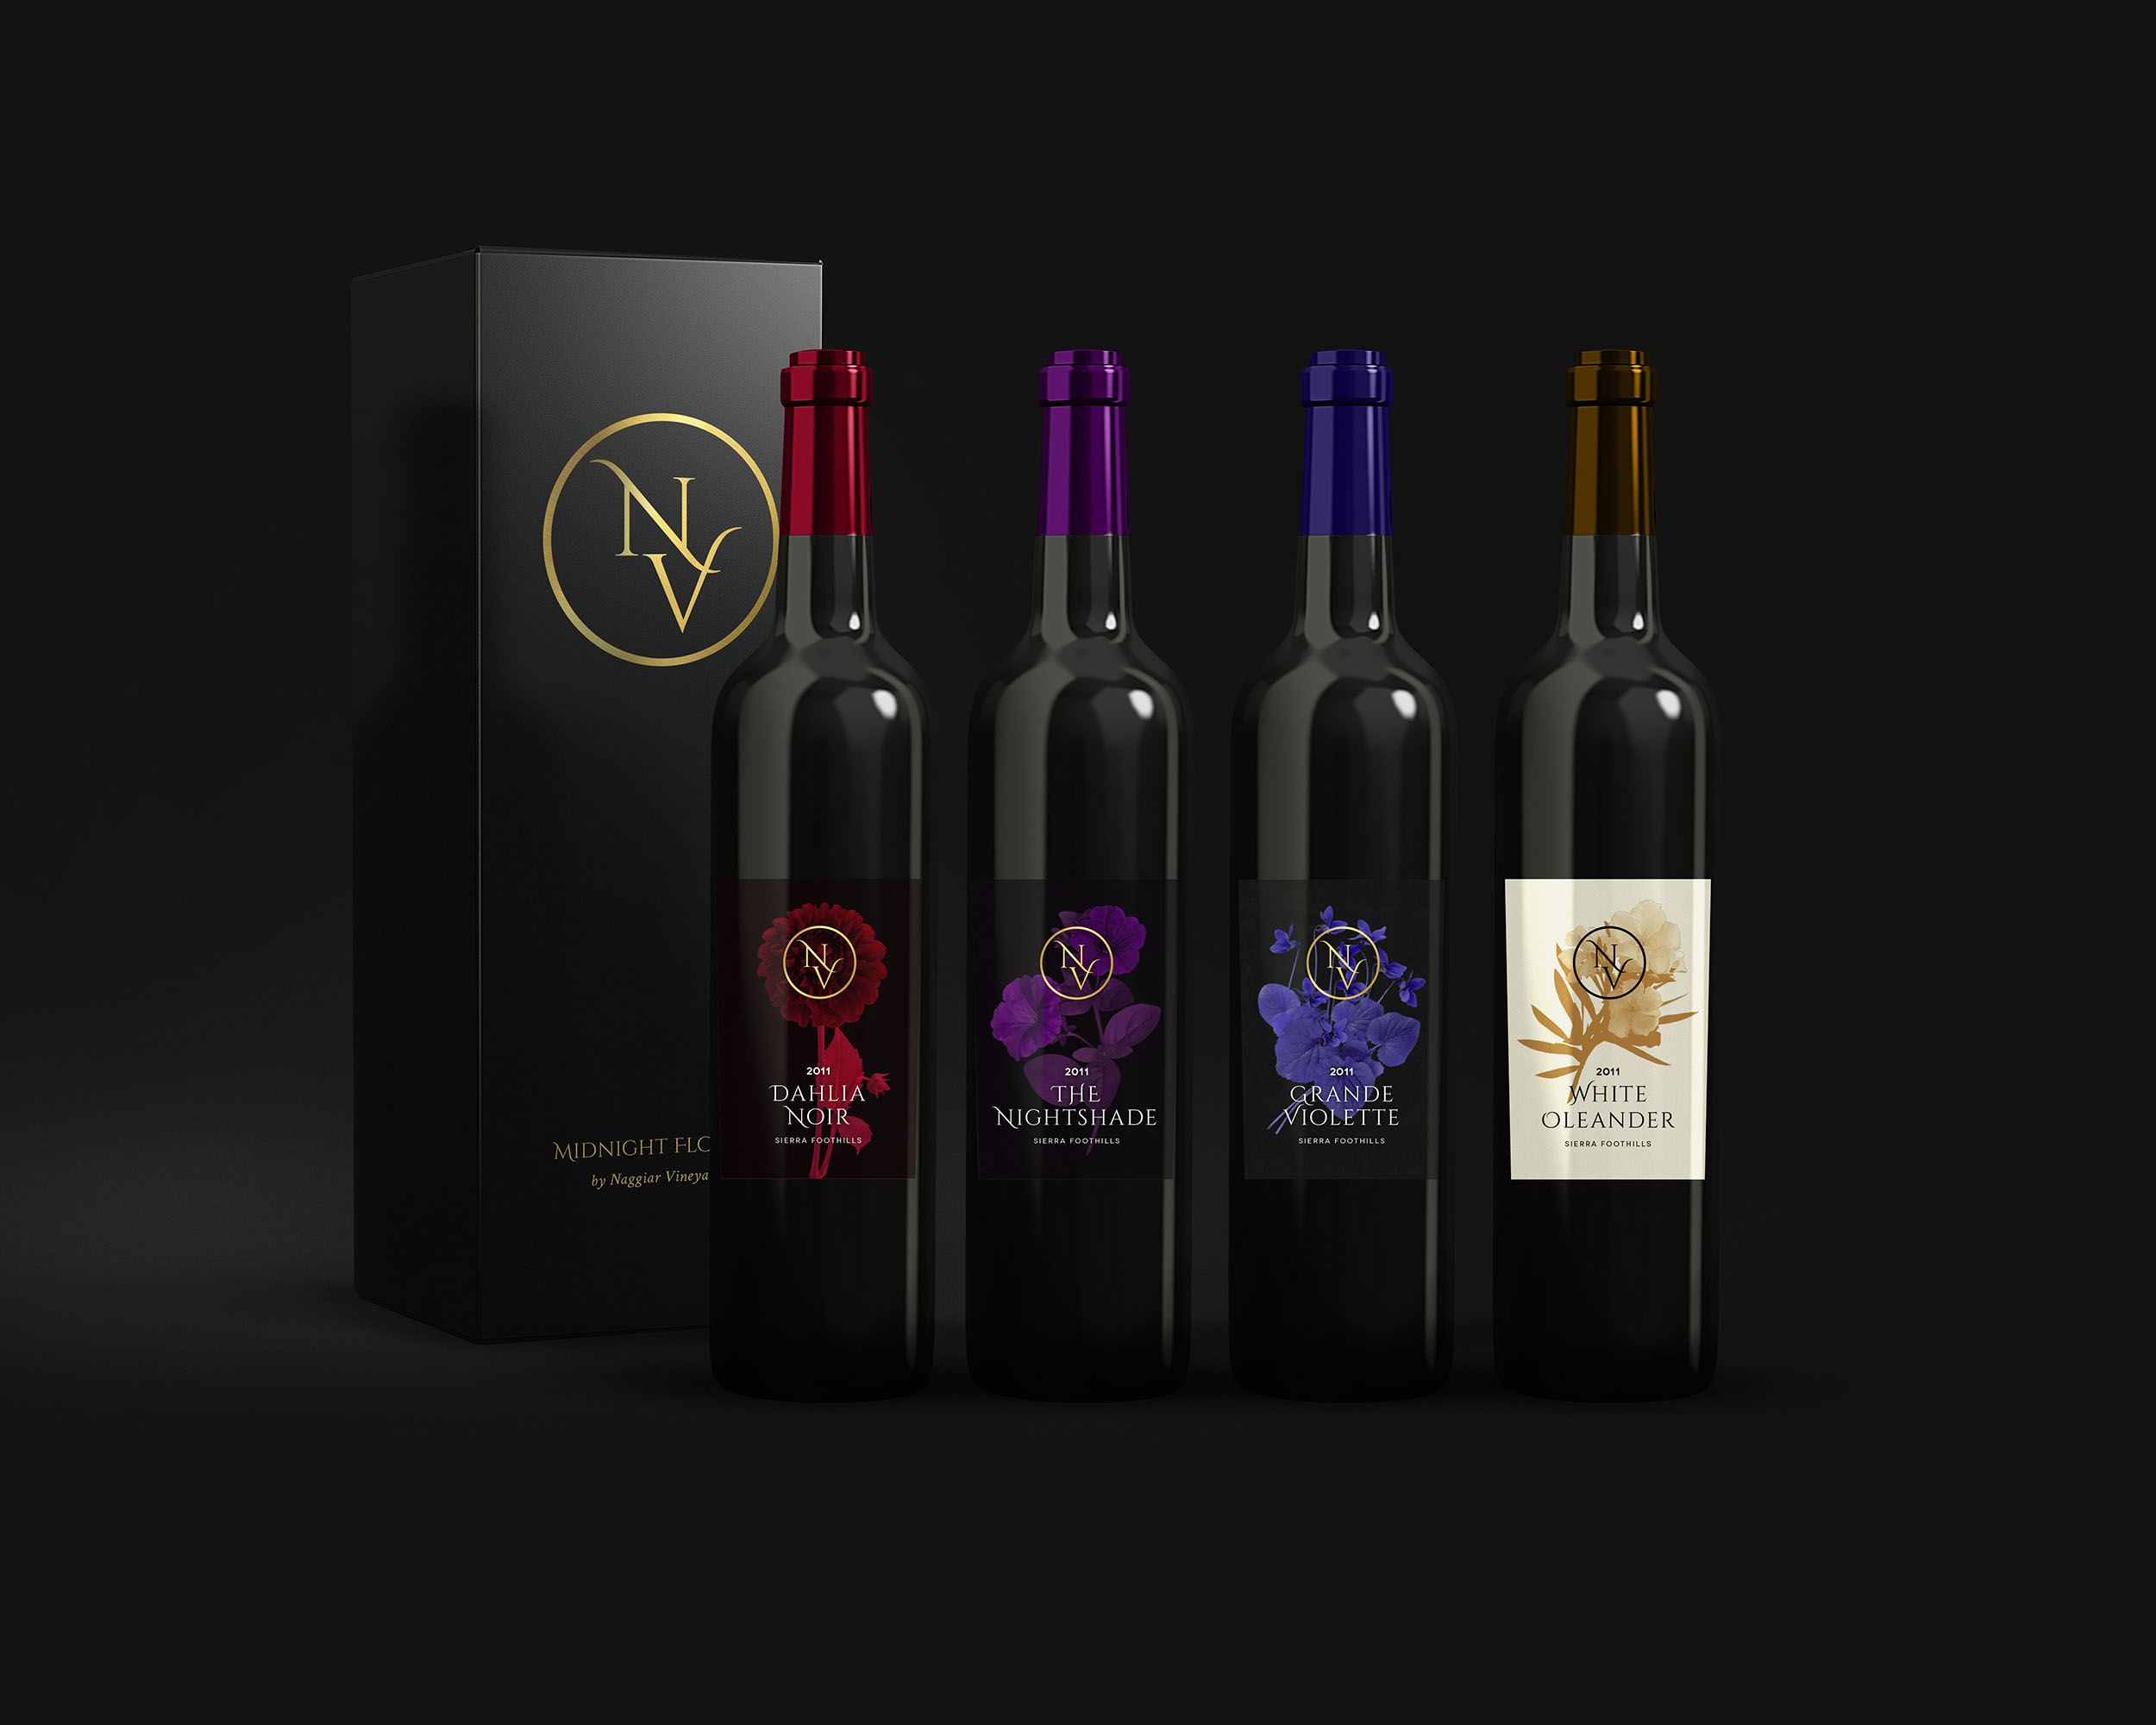 NV Wine Labels Concept